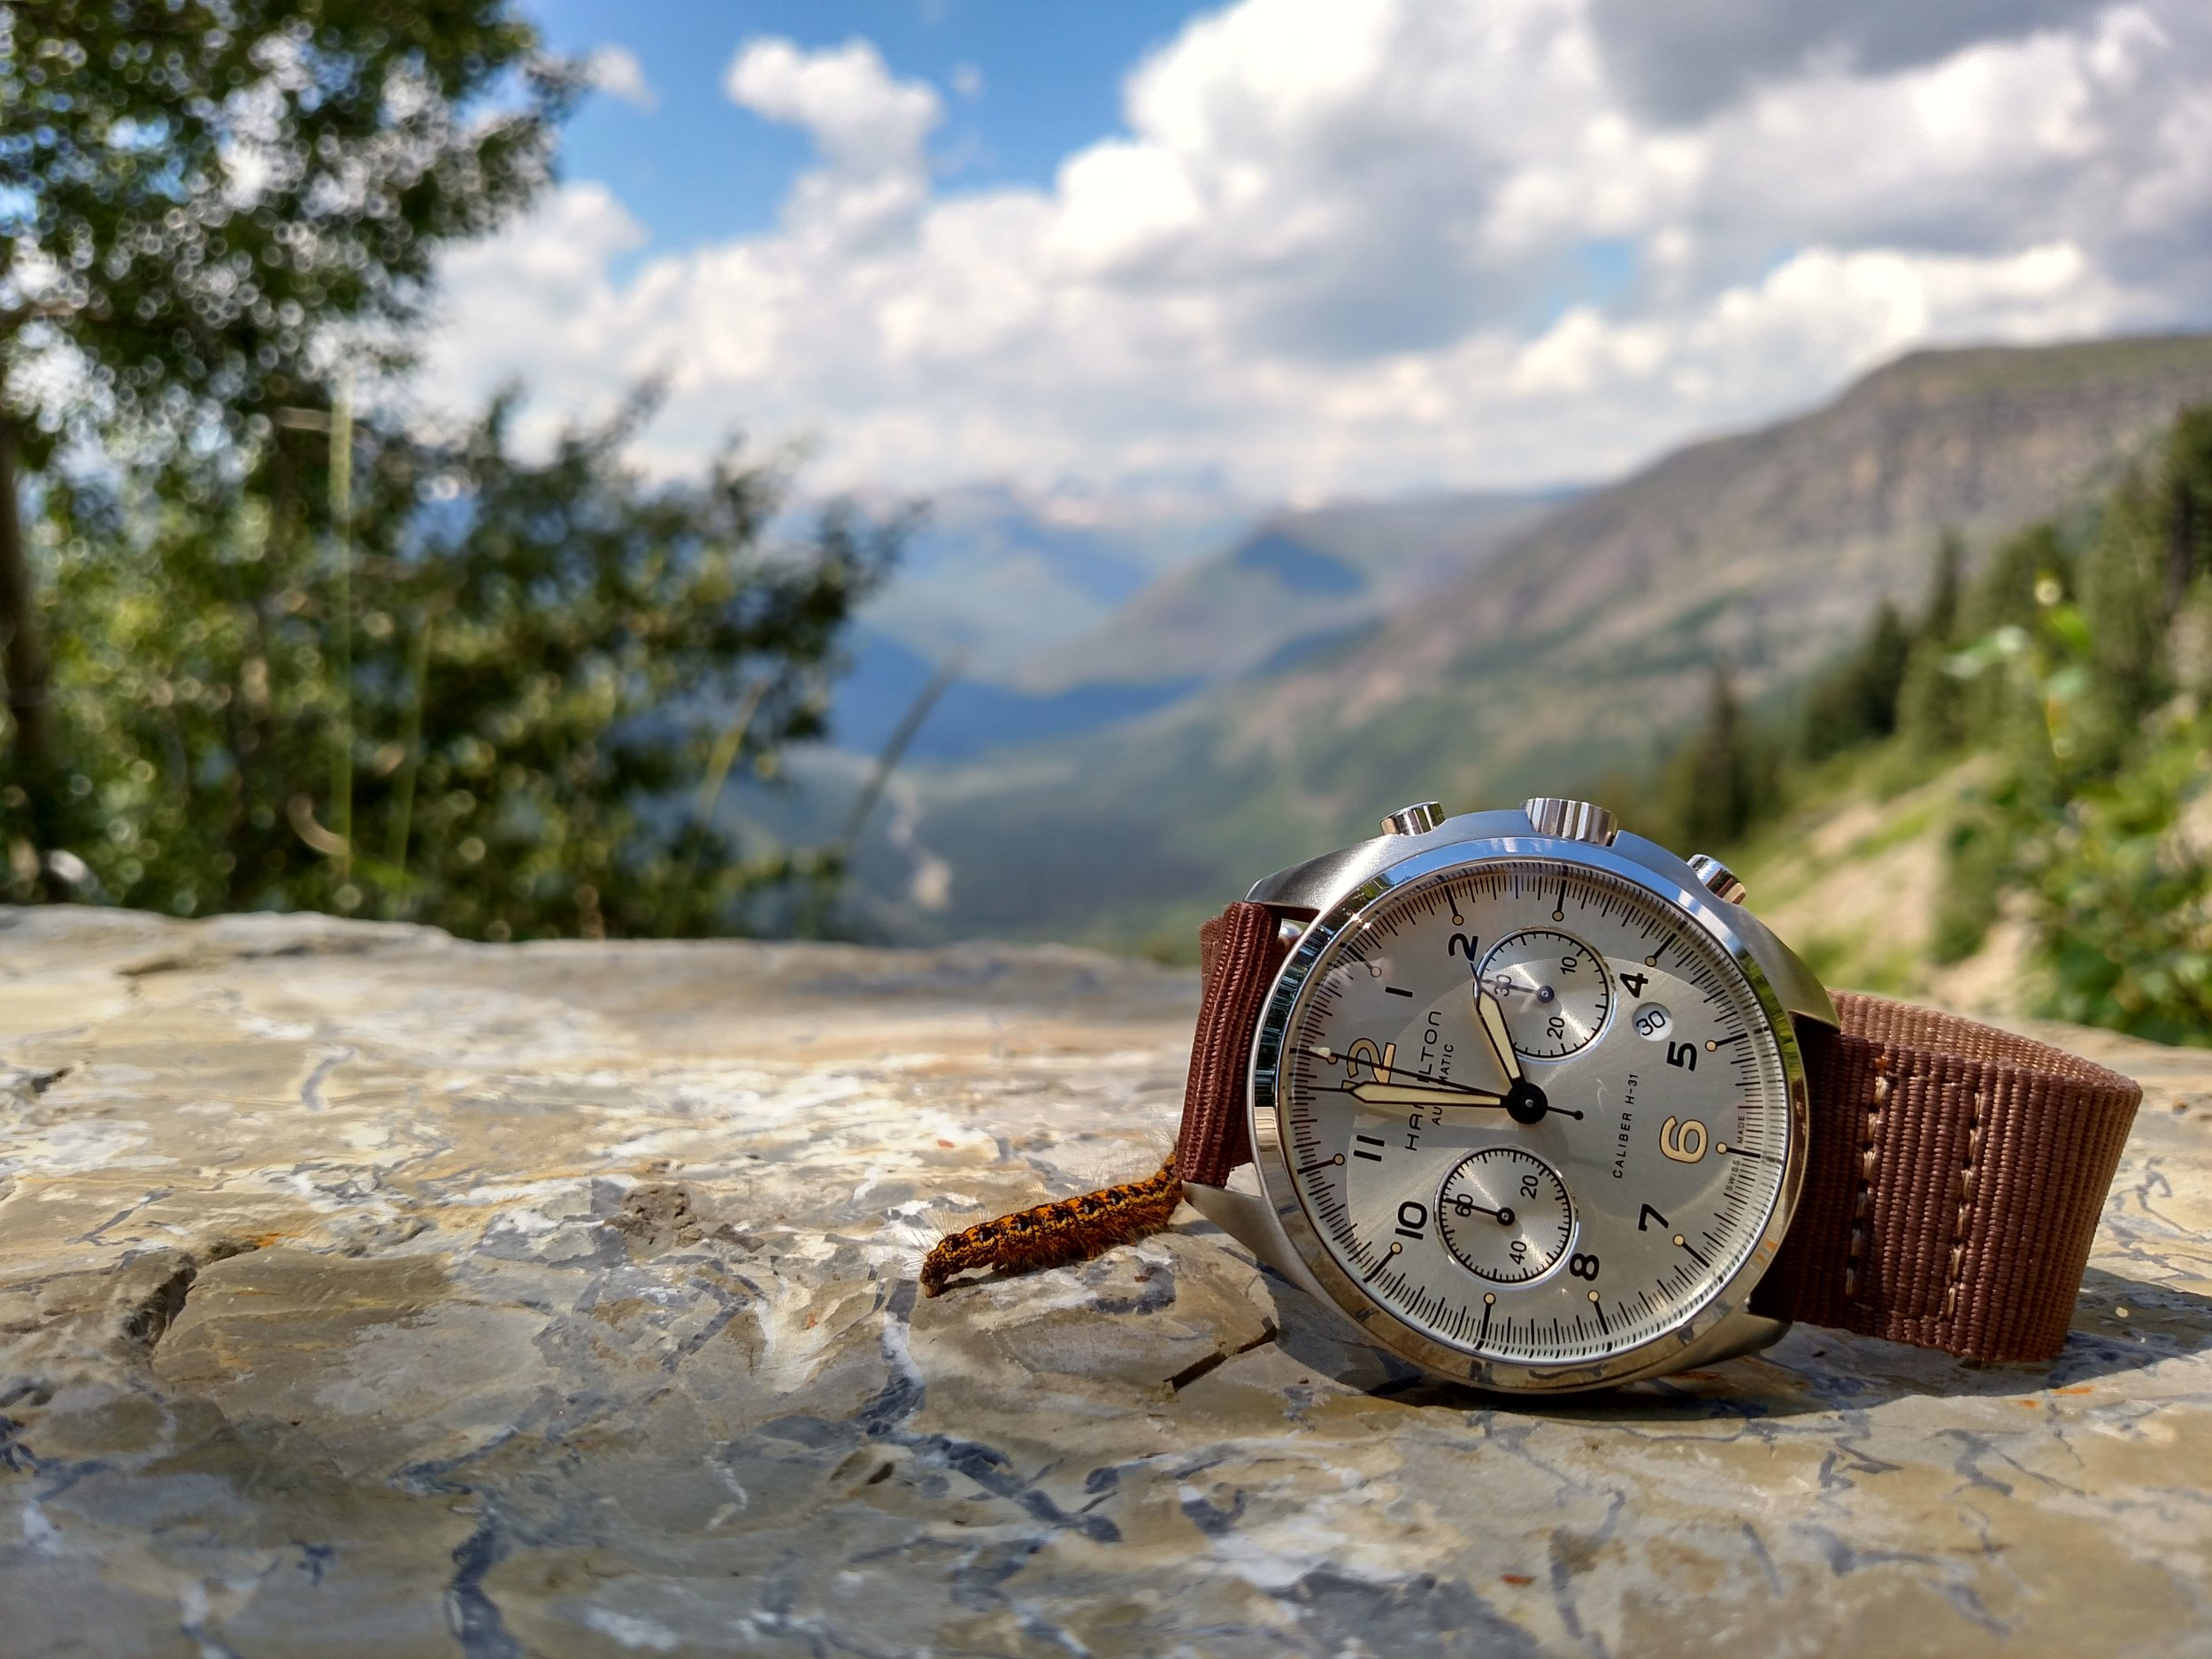 Hamilton Khaki Pilot Pioneer on Going-To-The-Sun Road  Glacier National Park, Montana